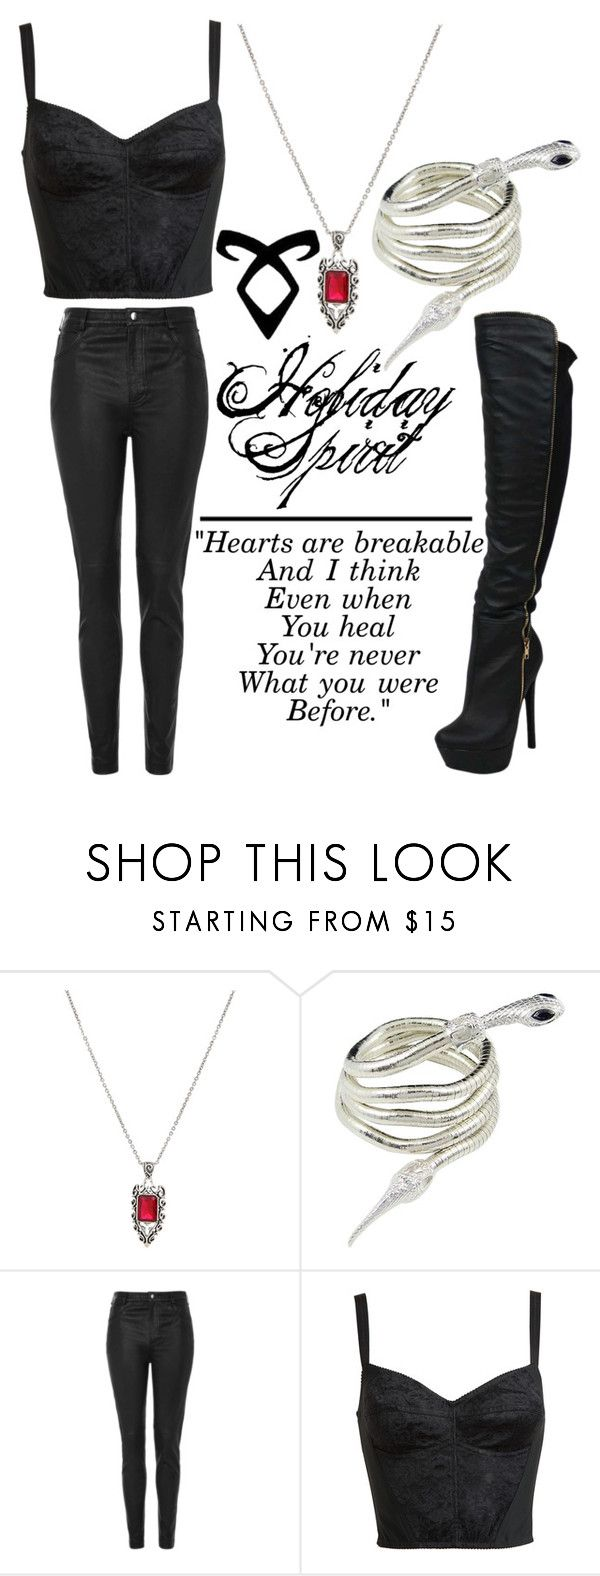 """Isabelle Lightwood Inspired Outfit"" by maryanarivera ❤ liked on Polyvore featuring Topshop and Dolce&Gabbana"